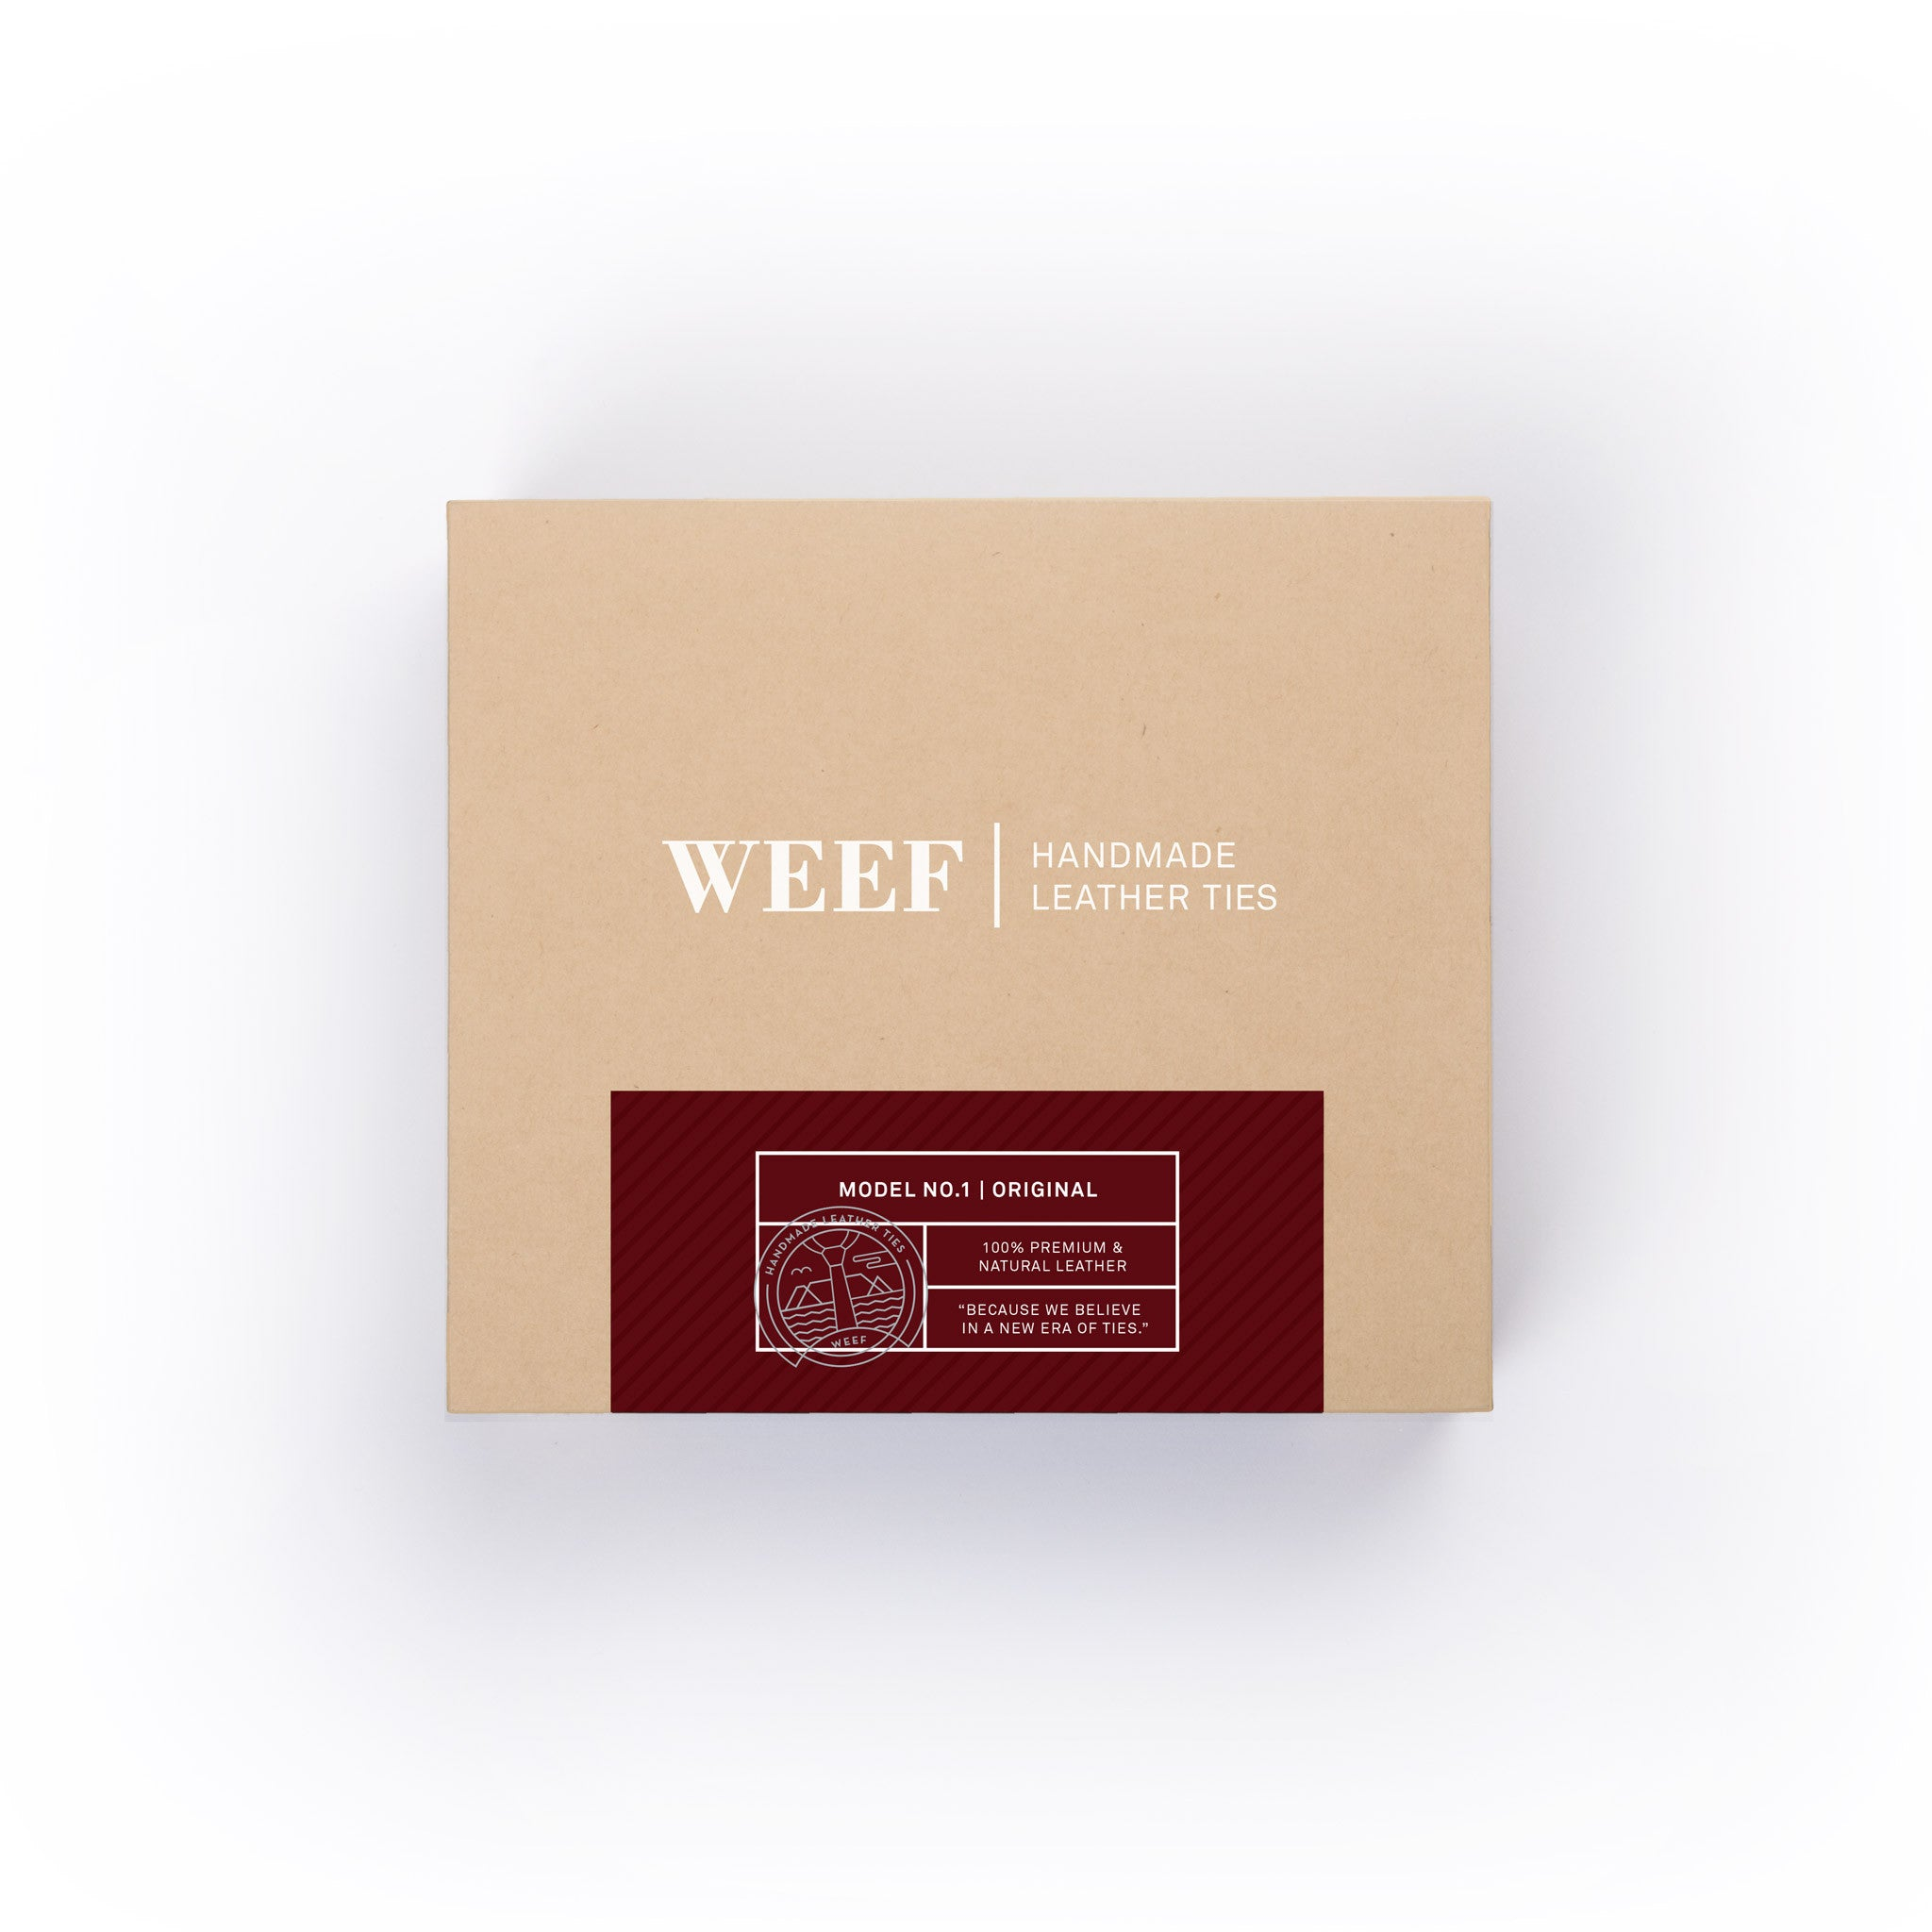 This is the premium packaging box of the oxblood red WEEF handmade leather tie.